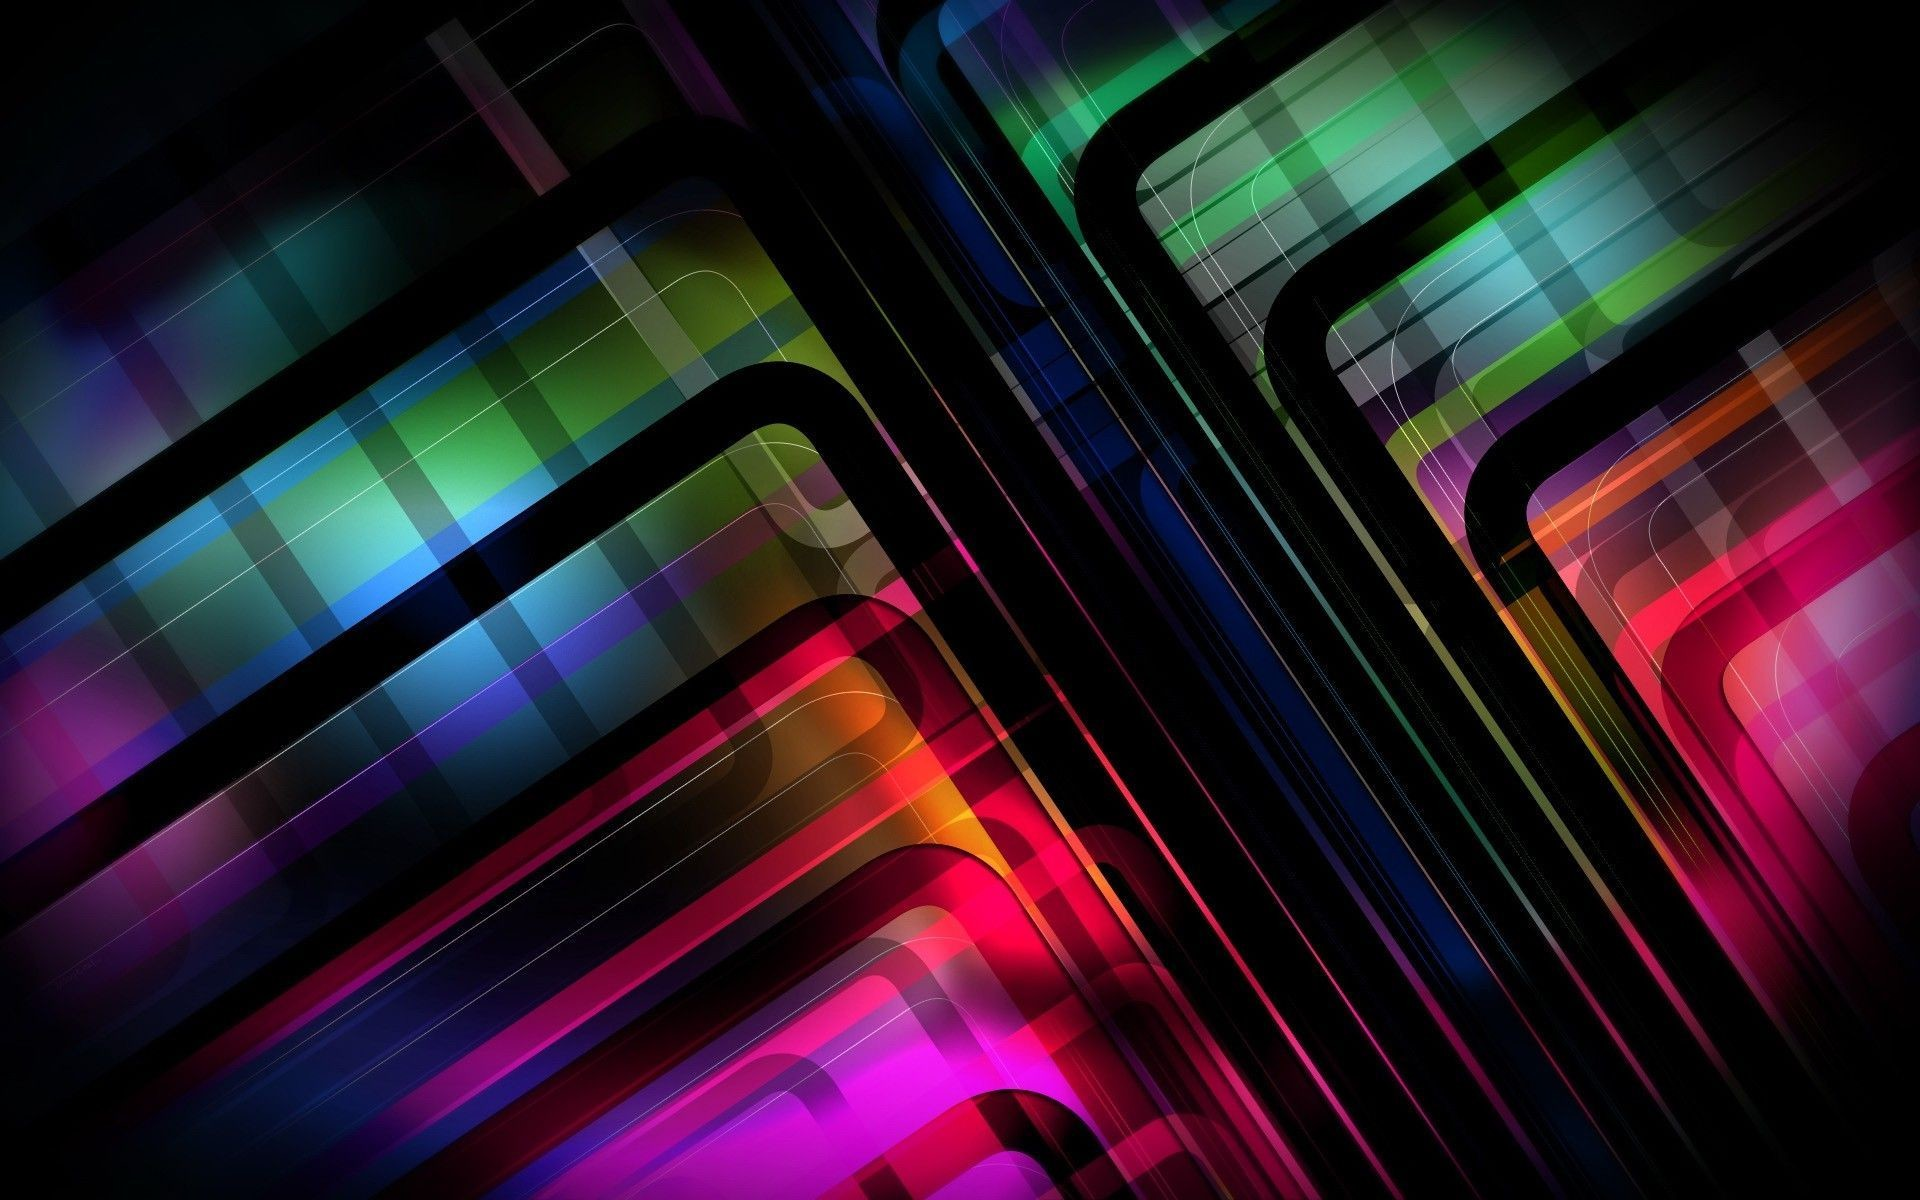 Colorful Neon Backgrounds 52 Images